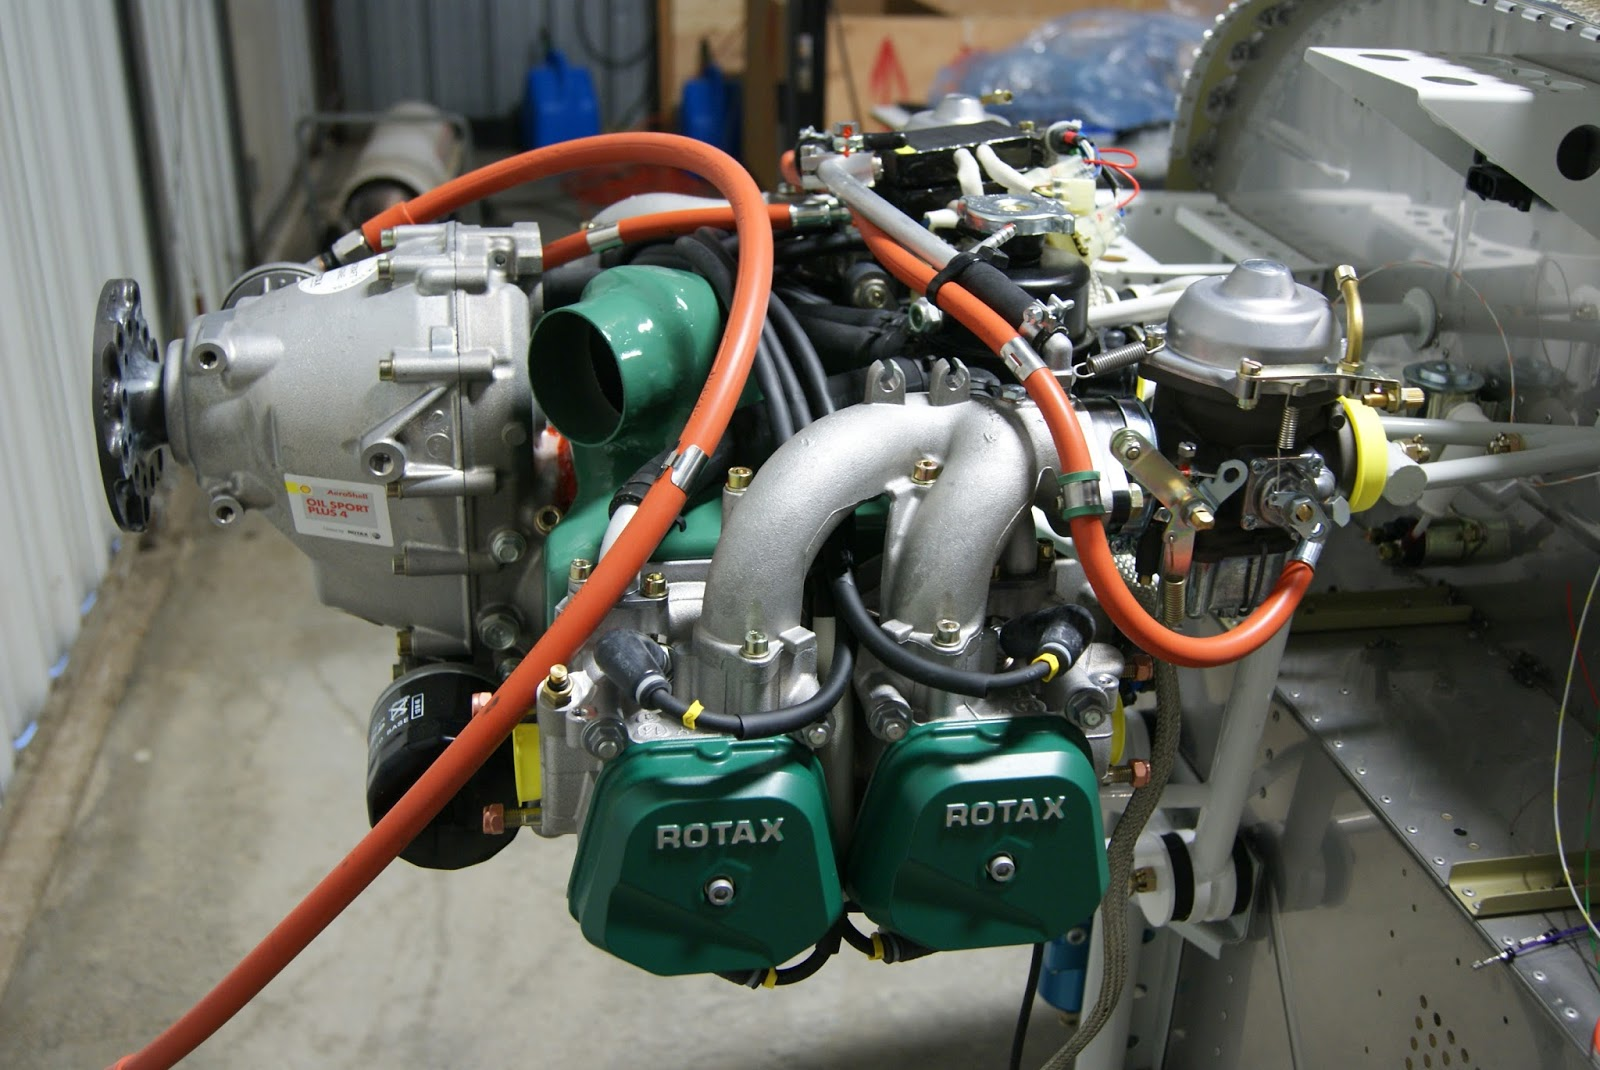 ROTAX 912 ULS ENGINE MOUNTING COMPLETED – Rotax 912 Engines Wiring